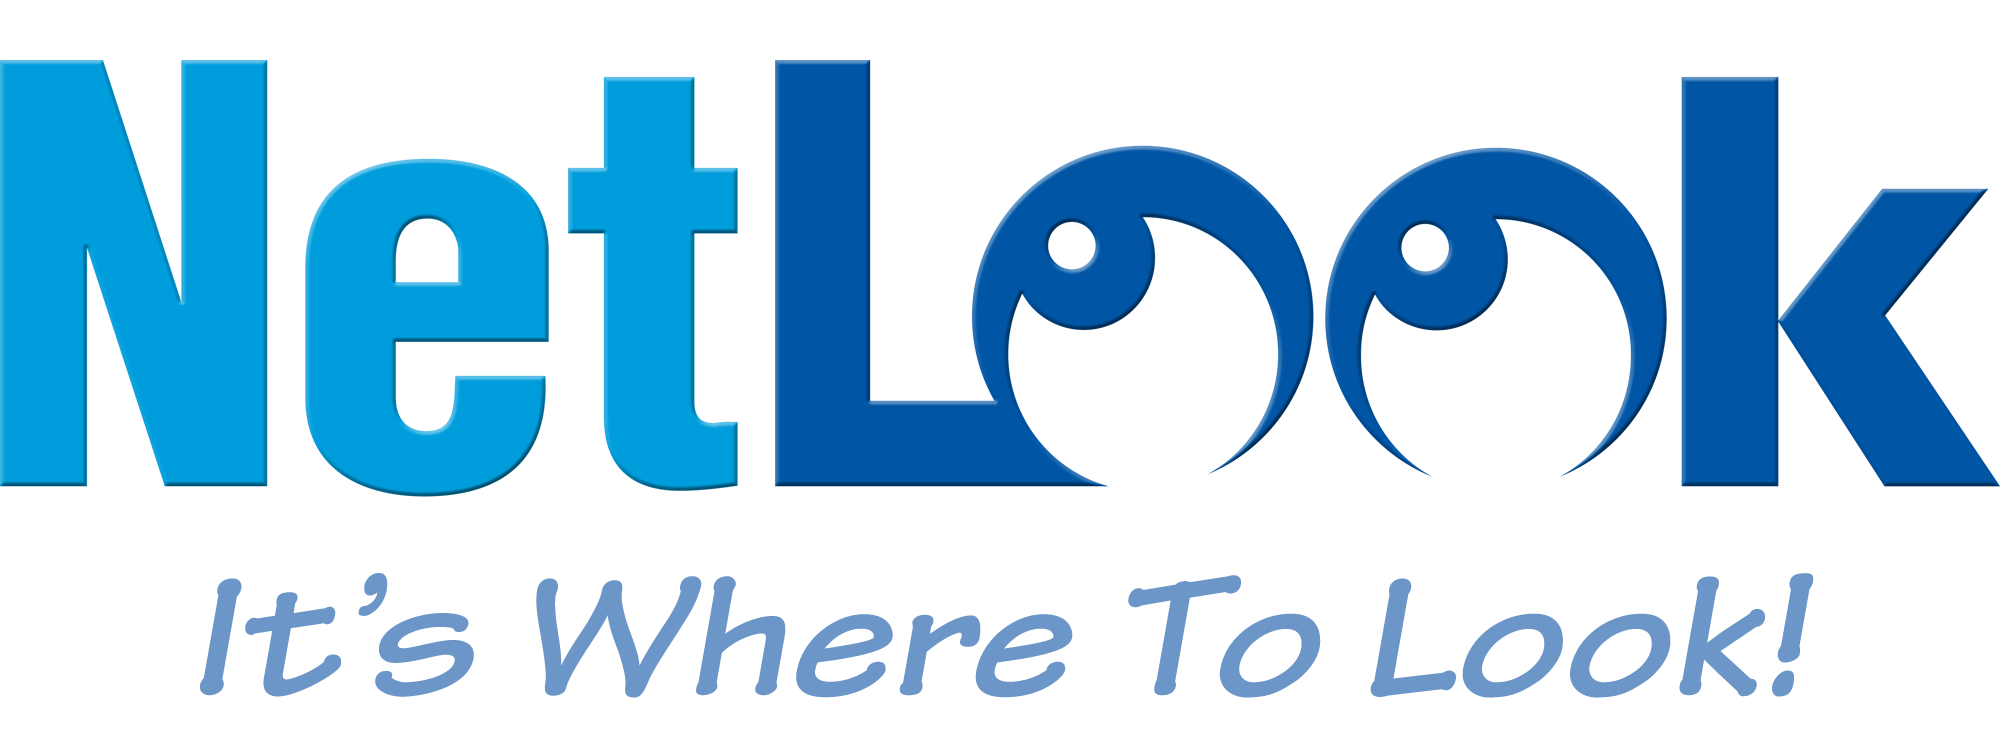 NetLook - It's where to look